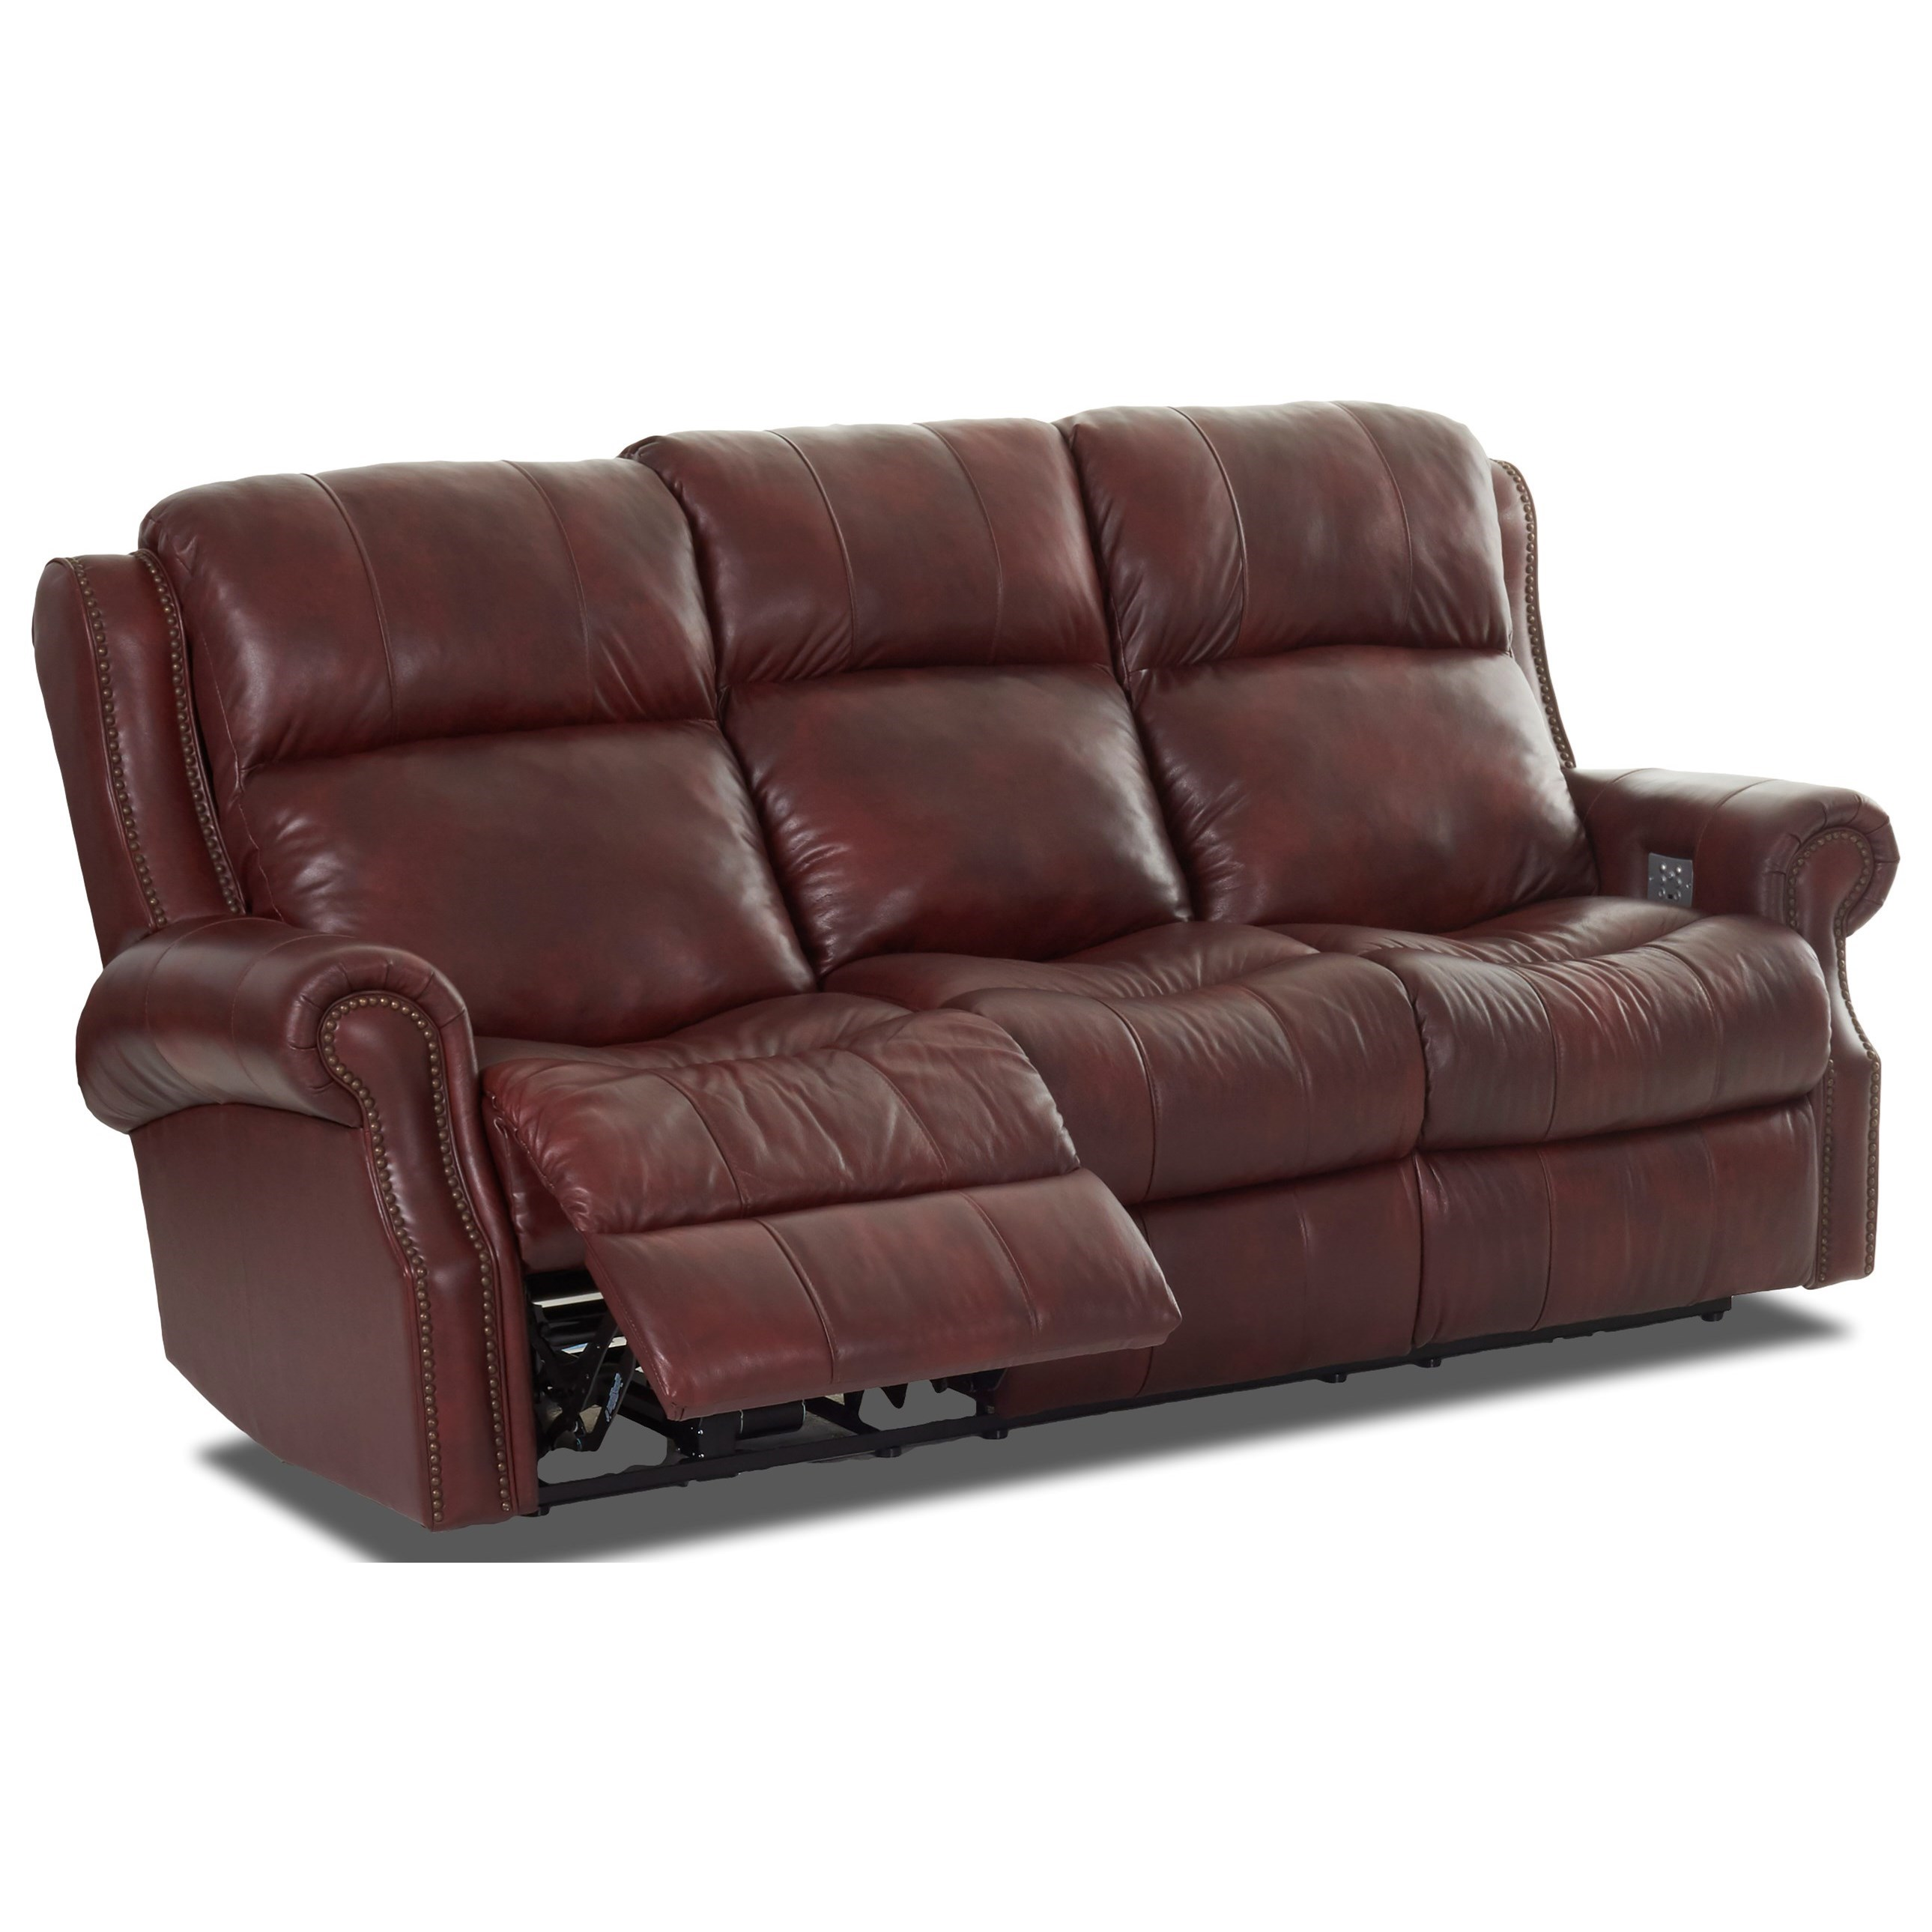 klaussner grand power reclining sofa simmons sunflower brown chaise vivio traditional with